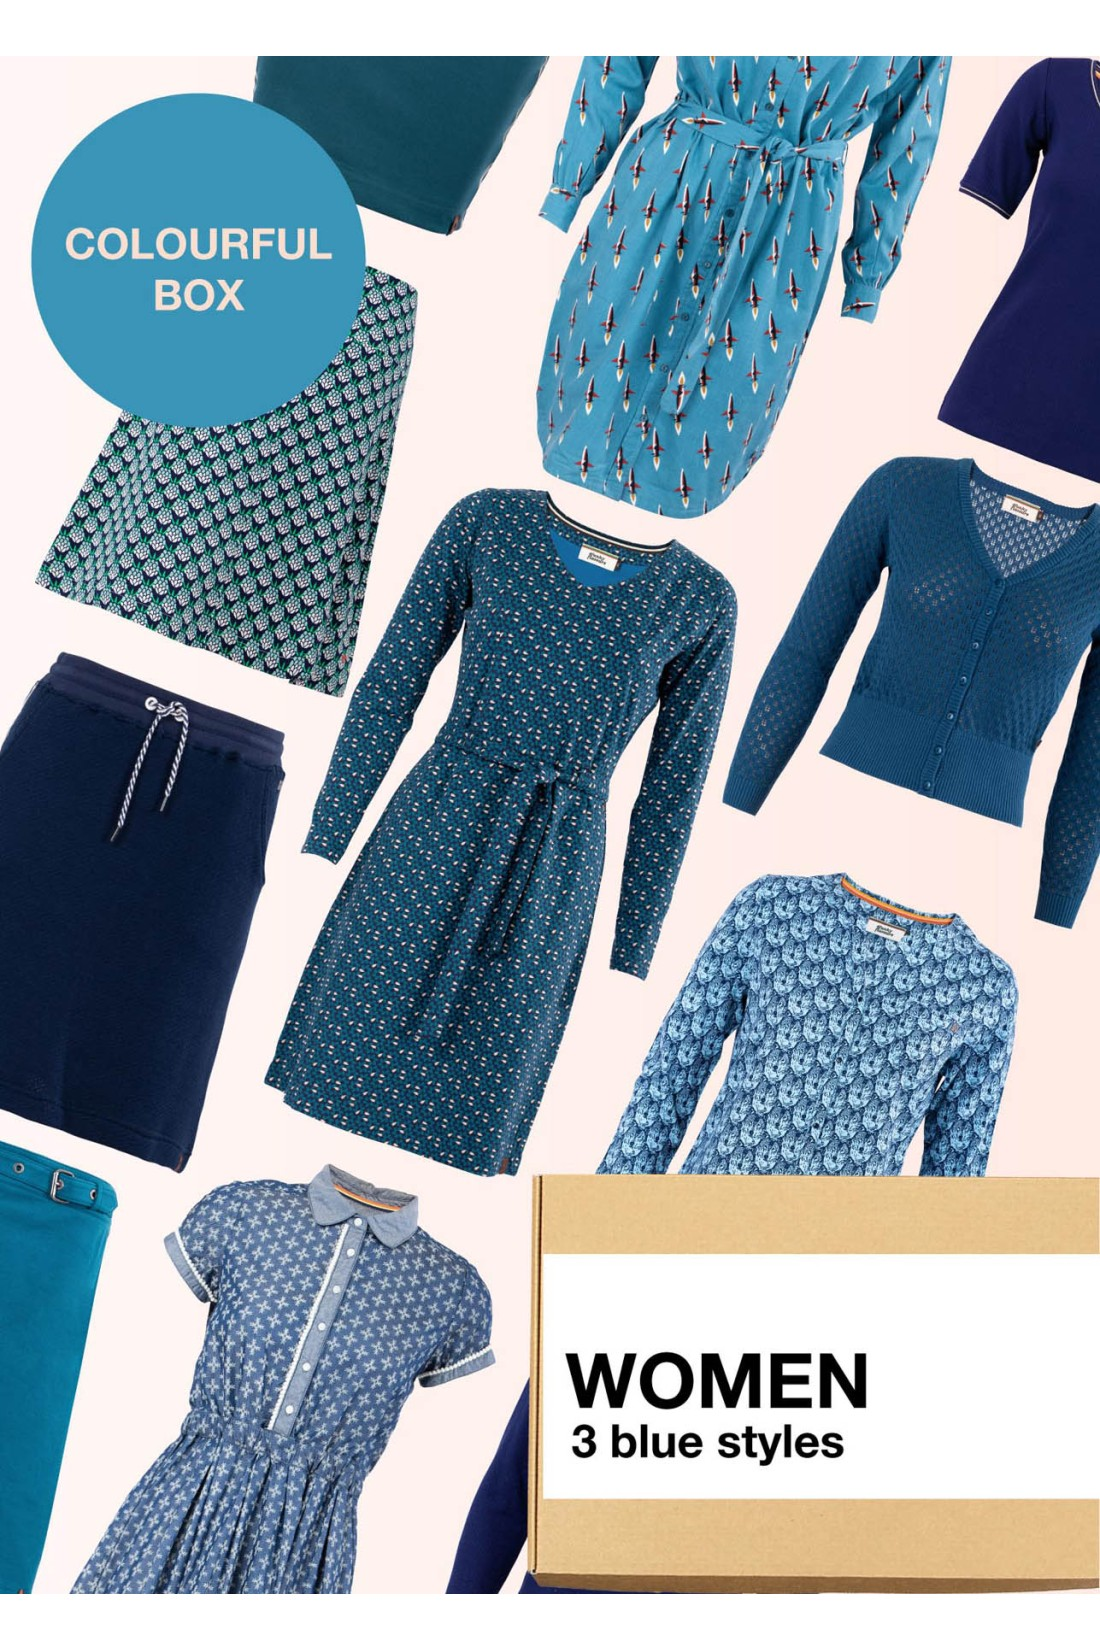 Surprise Box Women - Blue Box 3 Styles With Blue In It